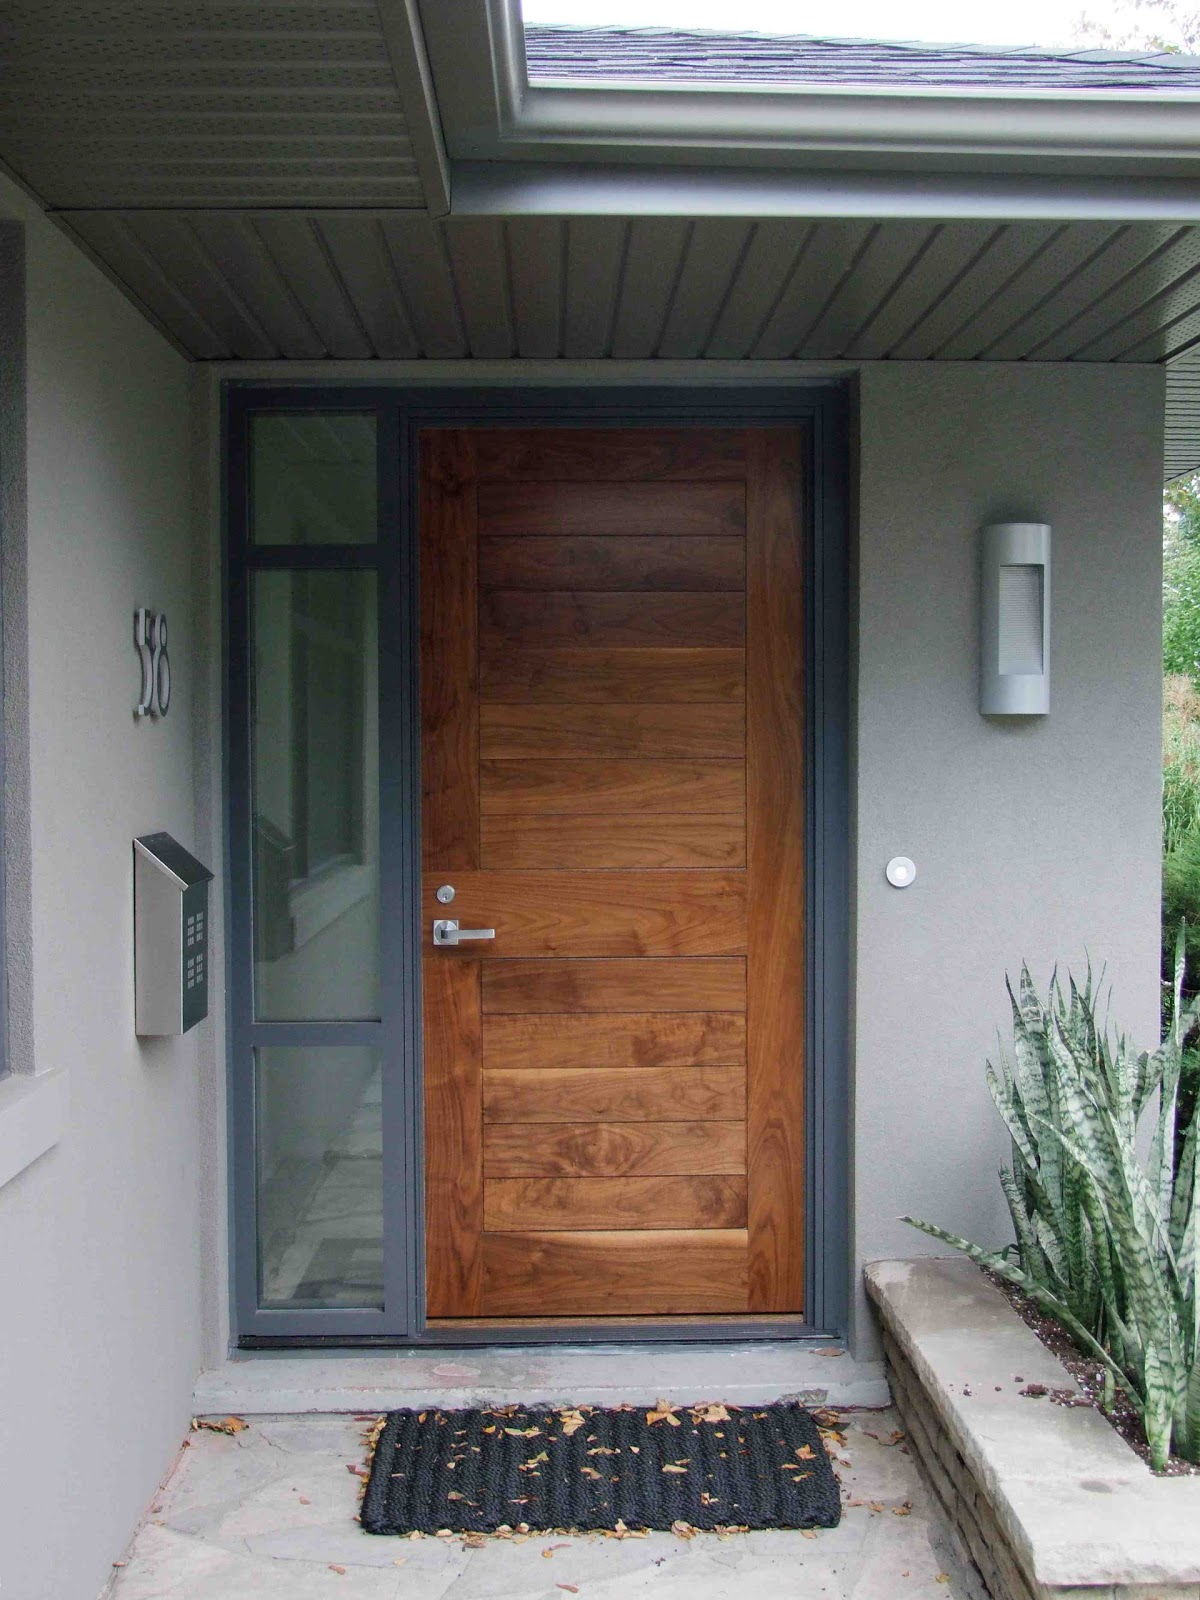 Creed 70 39 s bungalow makes a modern impression for Front door entrance designs for houses